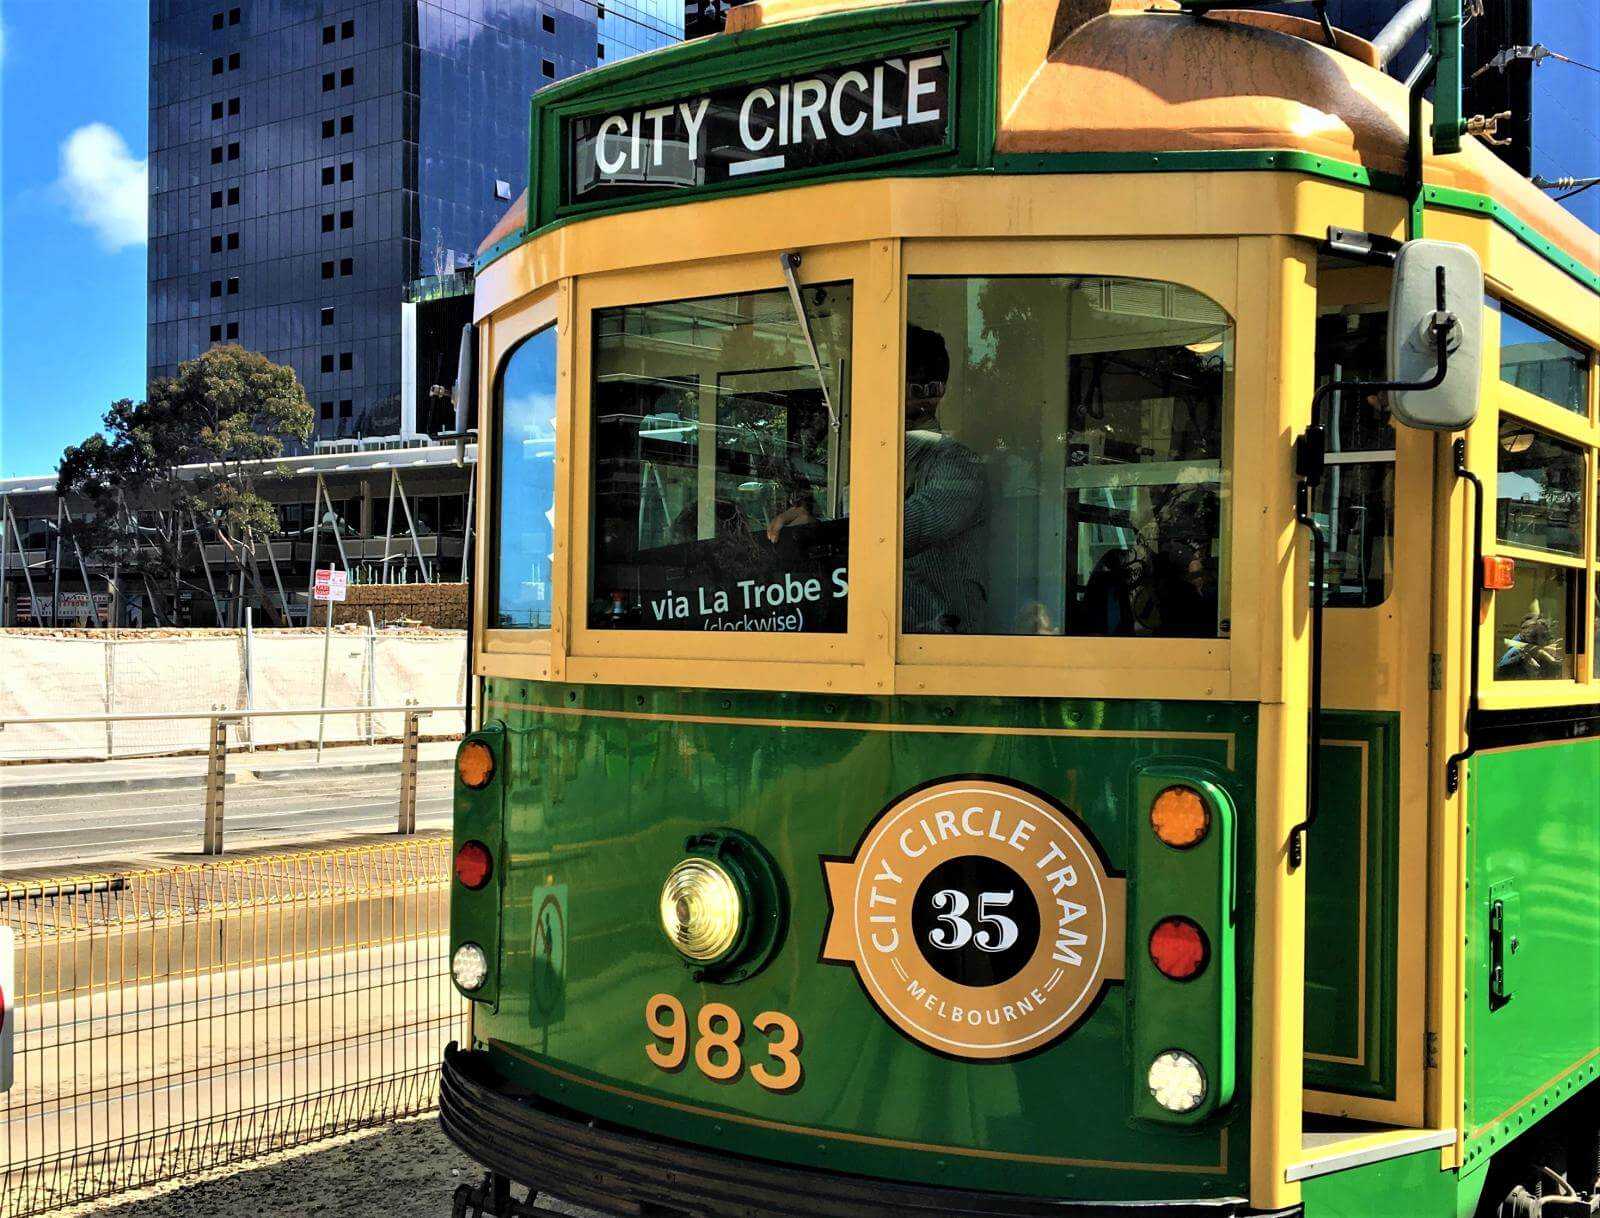 City-Tram in Melbourne